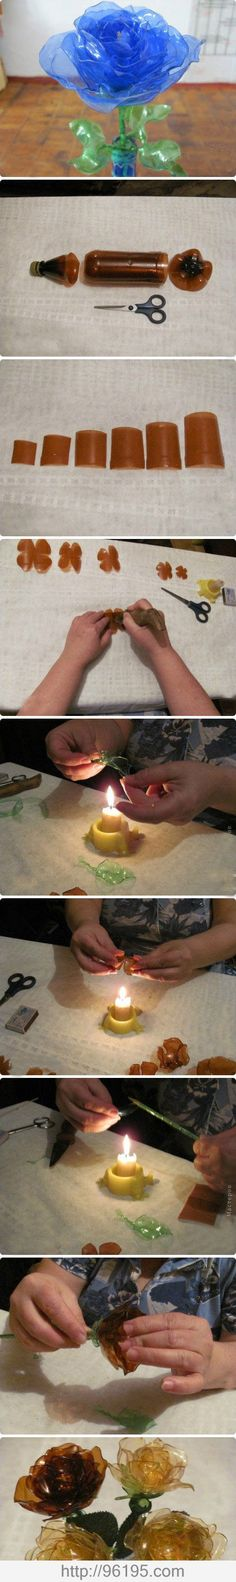 Make Flowers out of plastic bottles